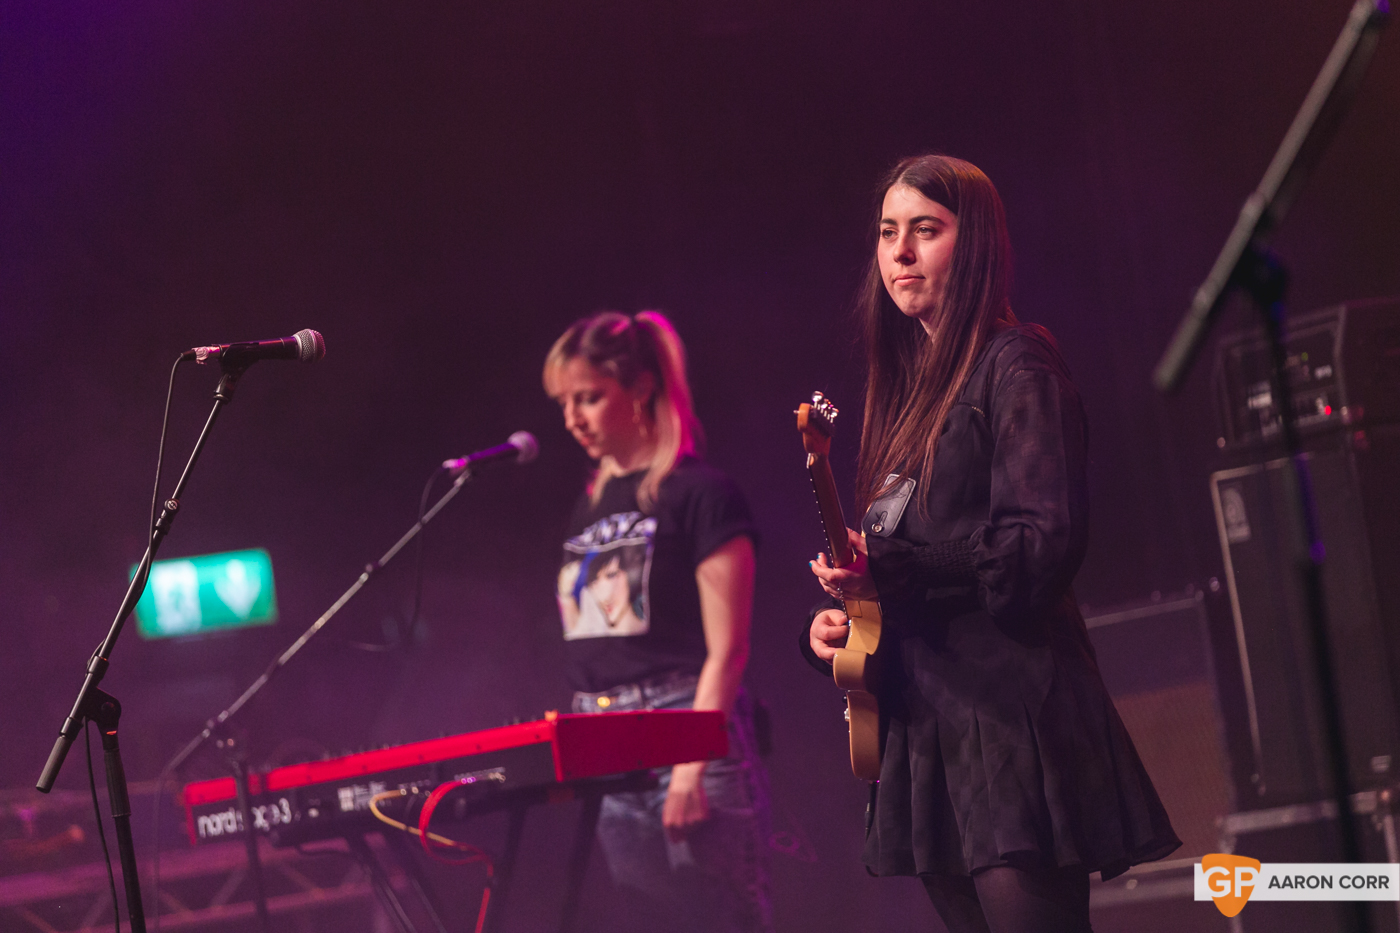 Sorcha Richardson at Choice Music Prize 2020 in Vicar Street, Dublin on 05-Mar-20 by Aaron Corr-5269